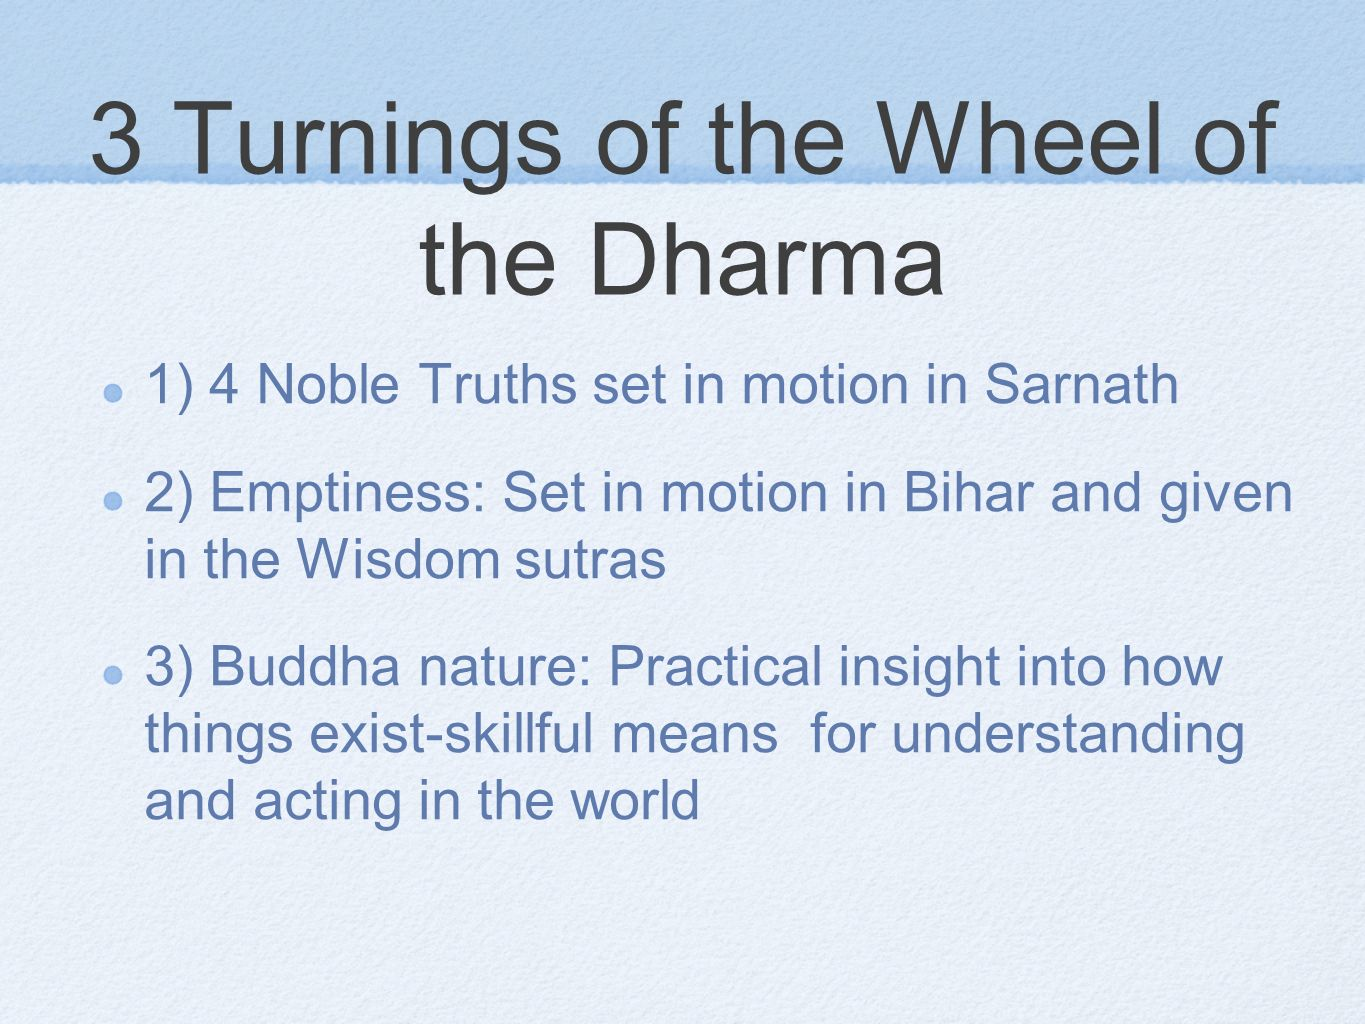 3 Turnings of the Wheel of the Dharma